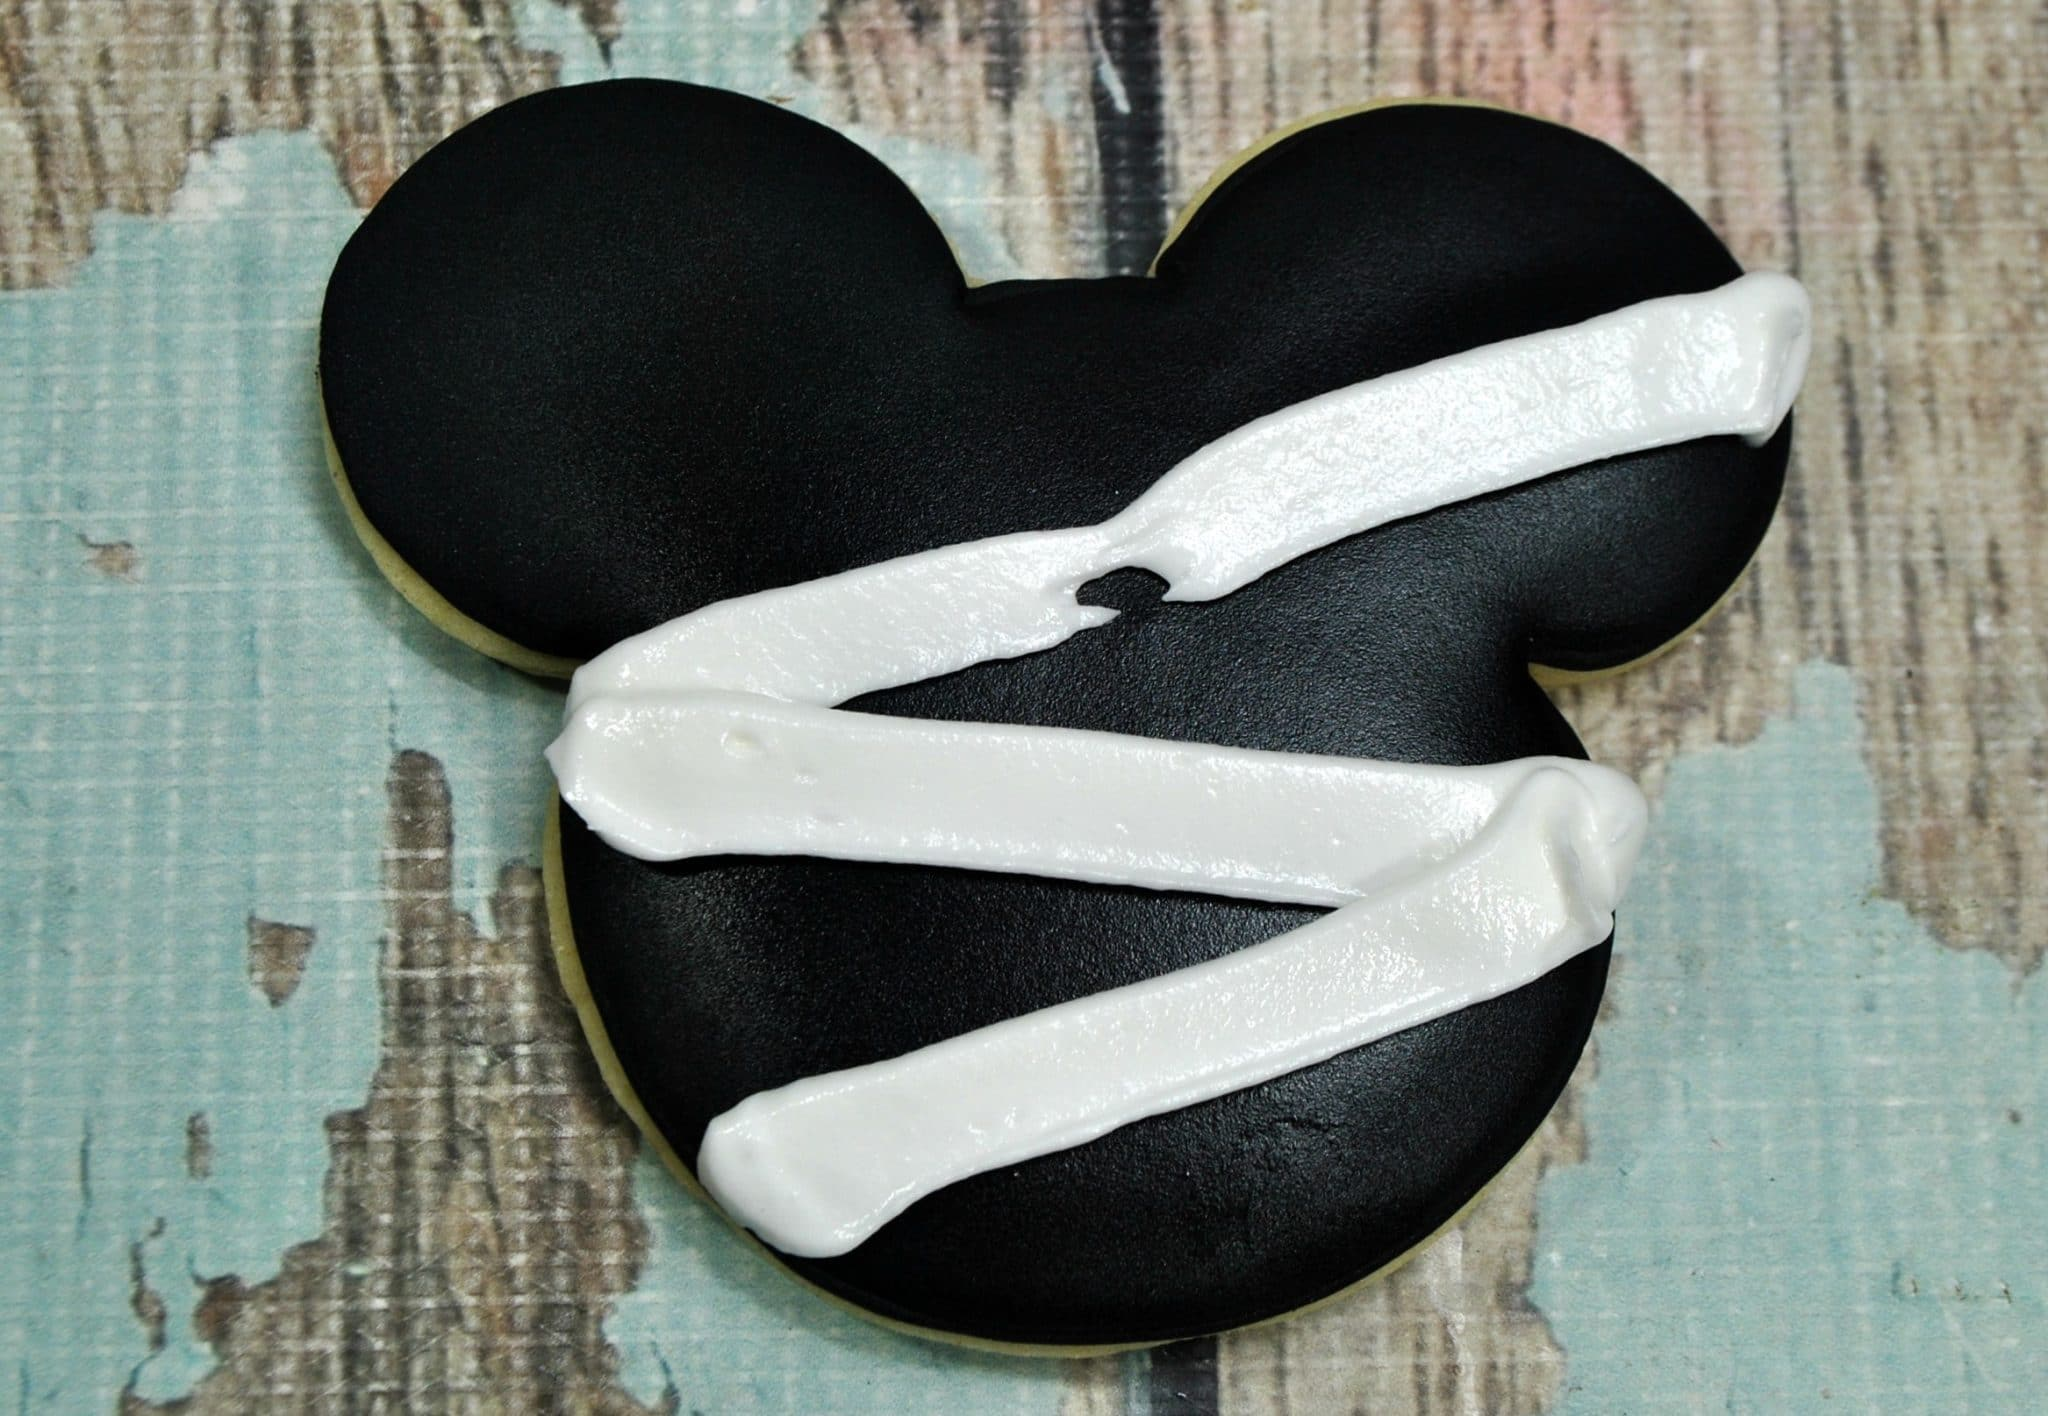 Mickey Mummy Cookie with mummy bands starting to apply